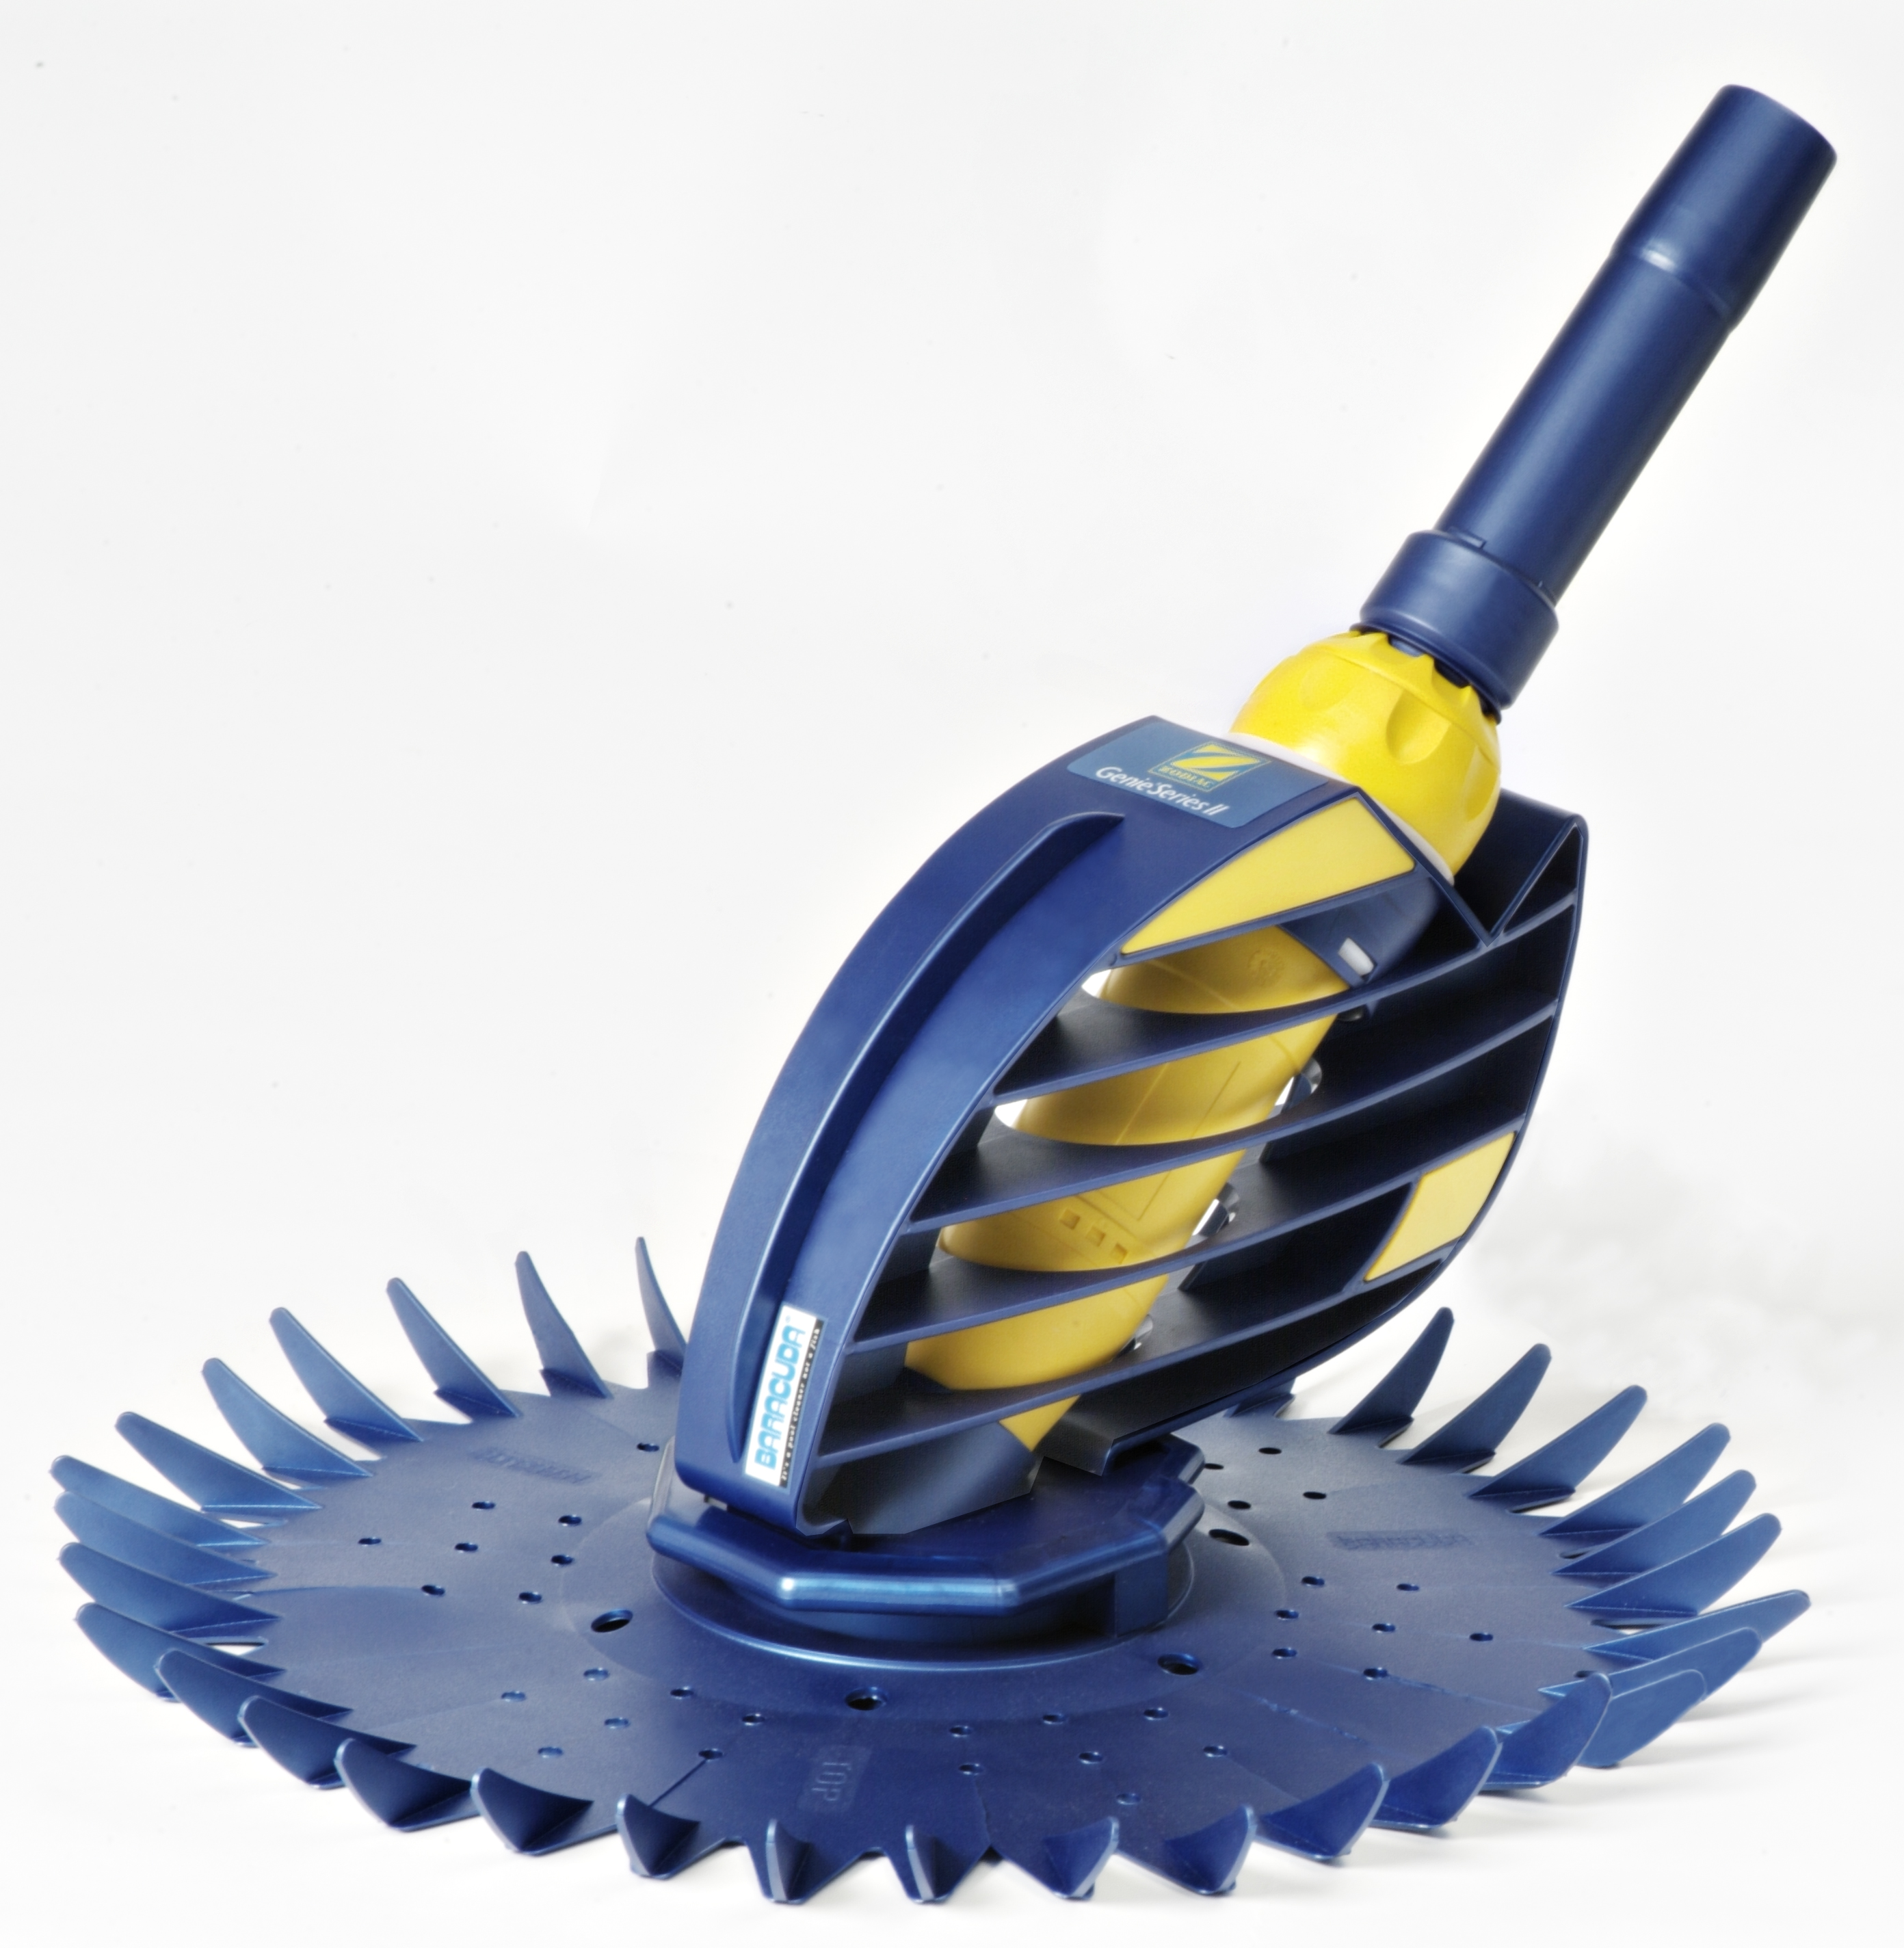 Zodiac G2 Suction Pool Cleaner Previously Called Baracuda